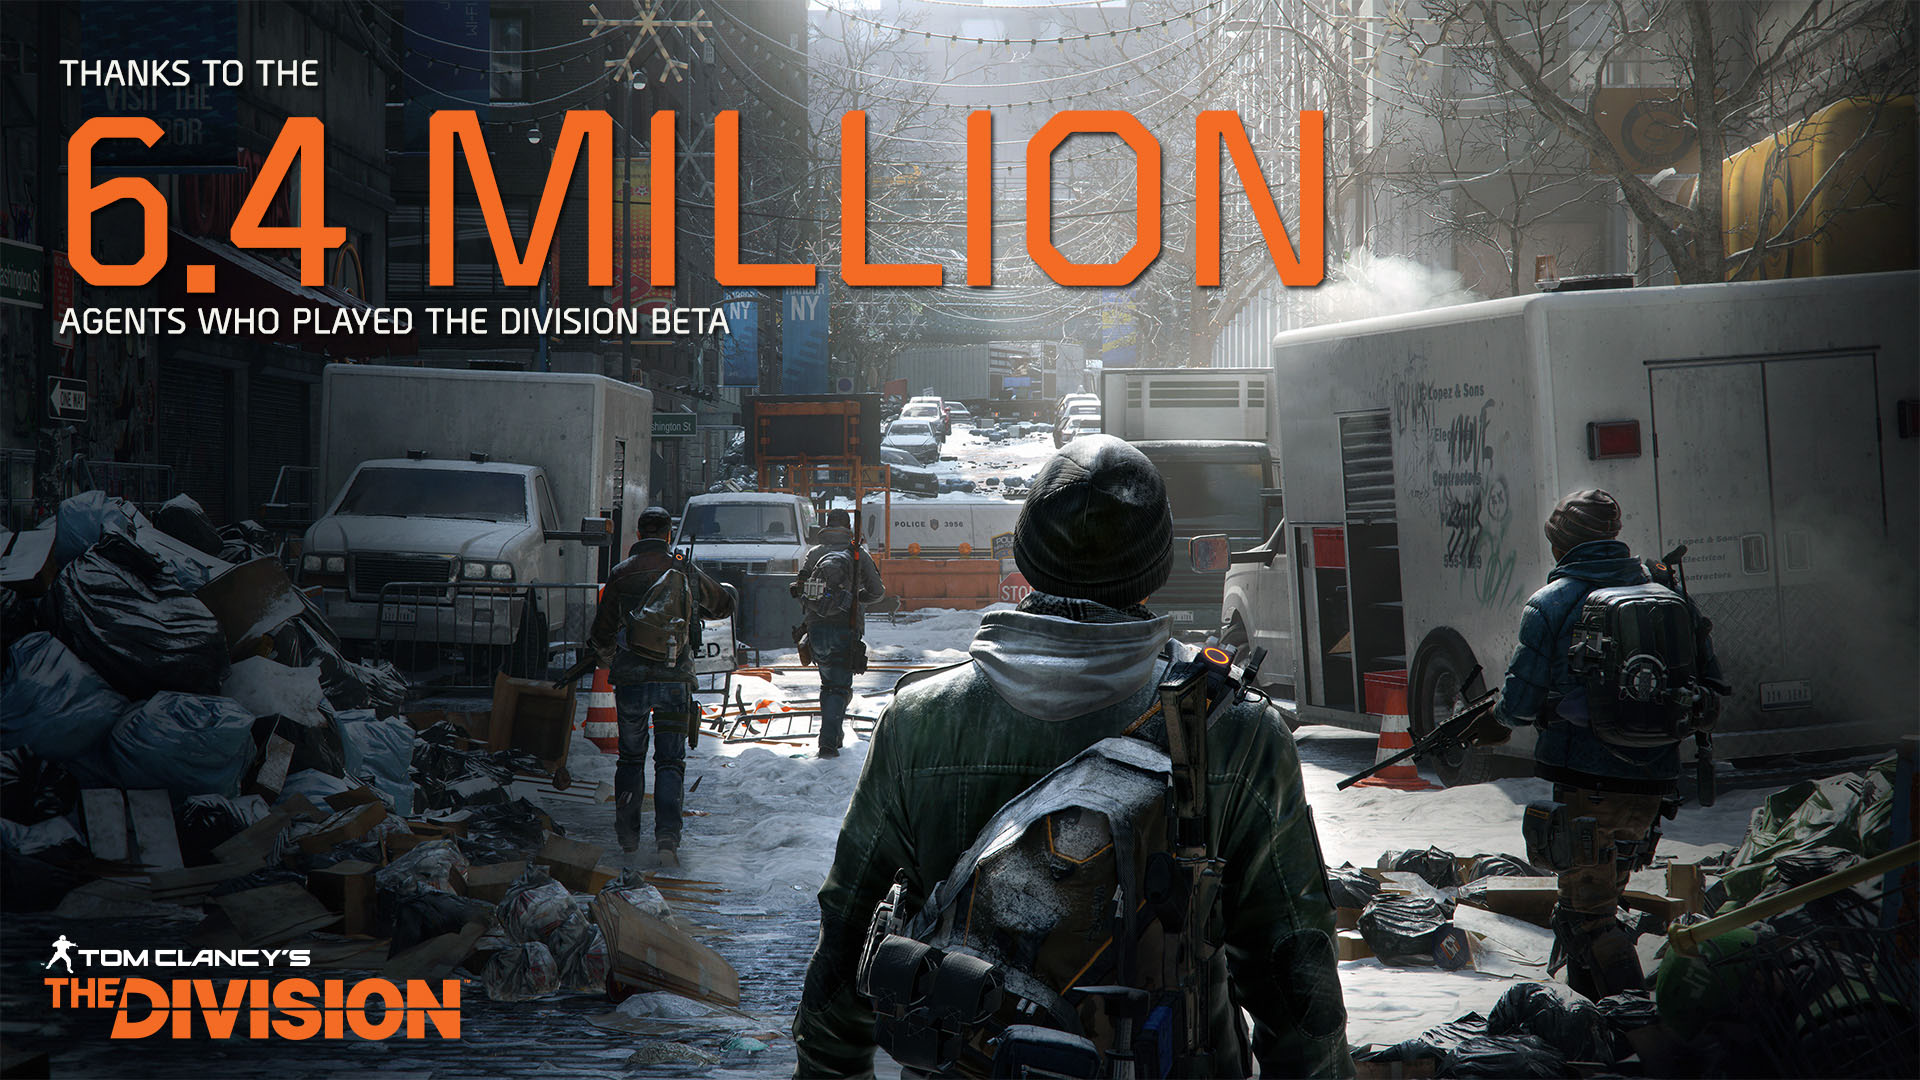 Worksheet Division Video the division open beta updates us 6 4 million agents explored new york city during beta